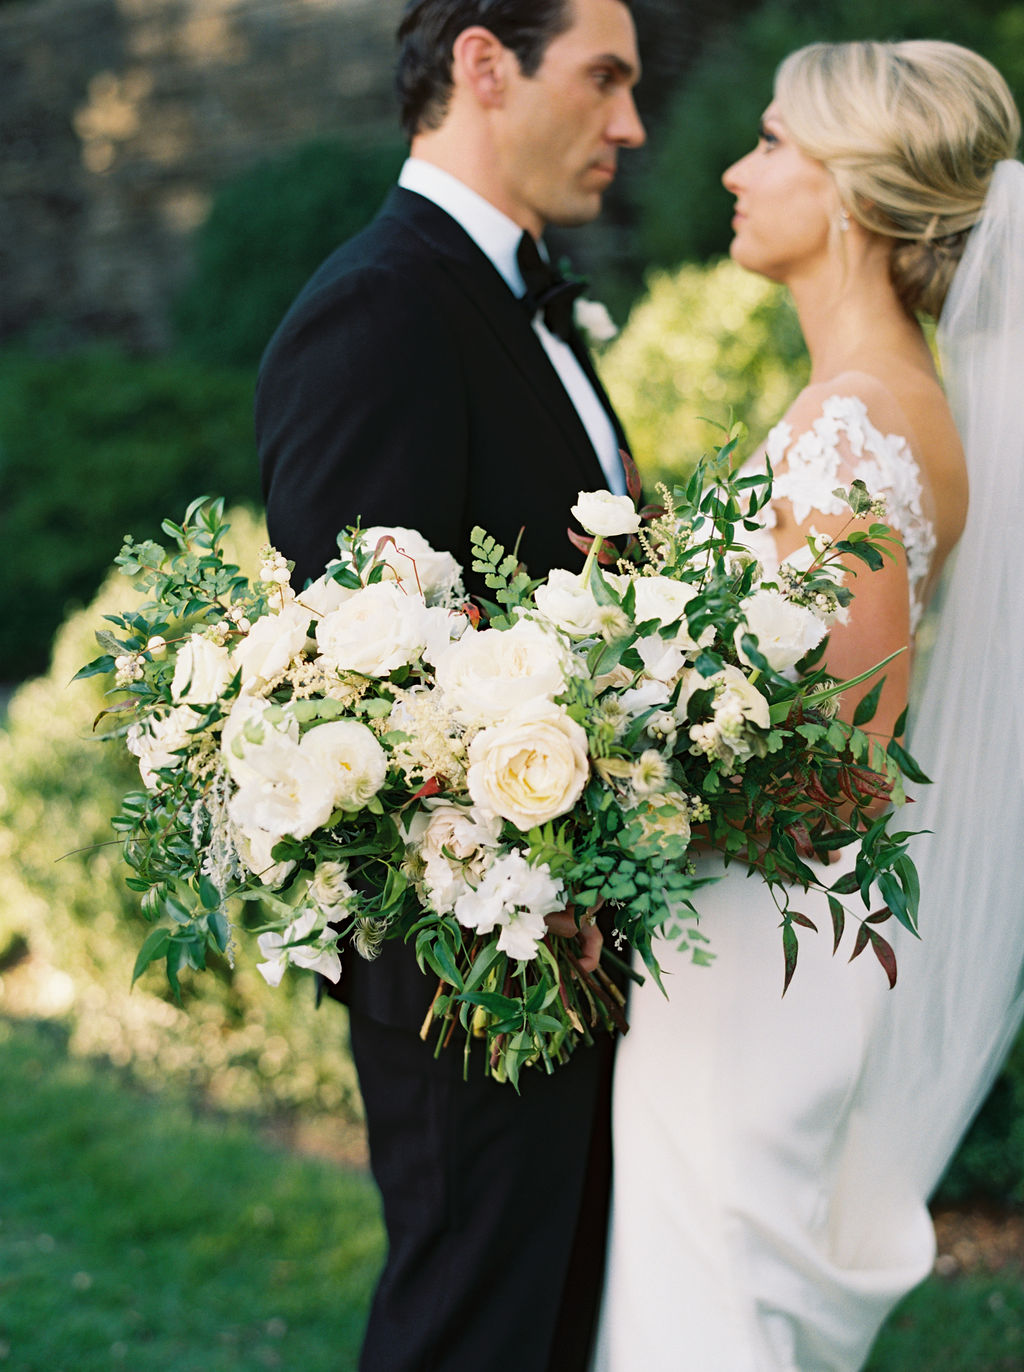 Natural, organic bridal bouquet with white garden roses, ranunculus, and lush greenery. Nashville, TN Wedding Florist.